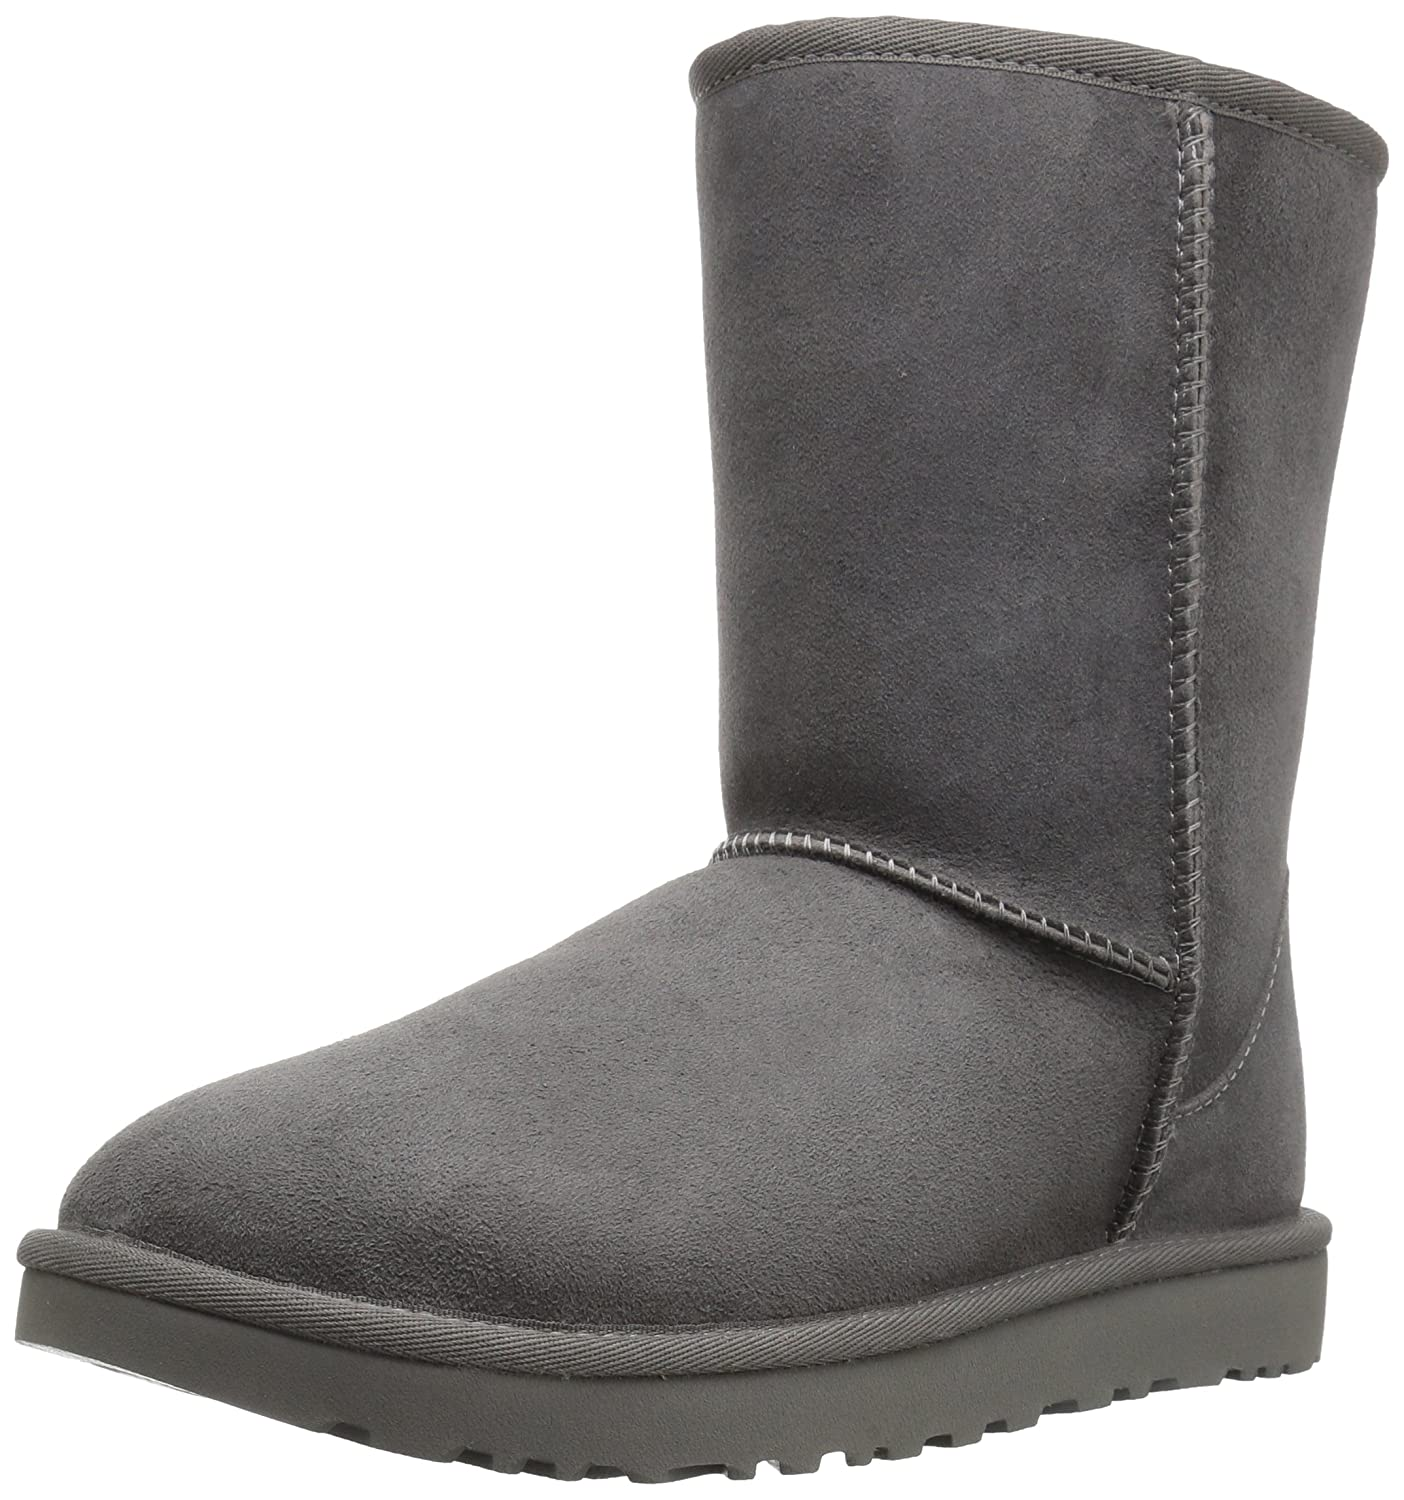 149320fb5b7a UGG Australia Women s Classic Short Boots  Amazon.co.uk  Shoes   Bags